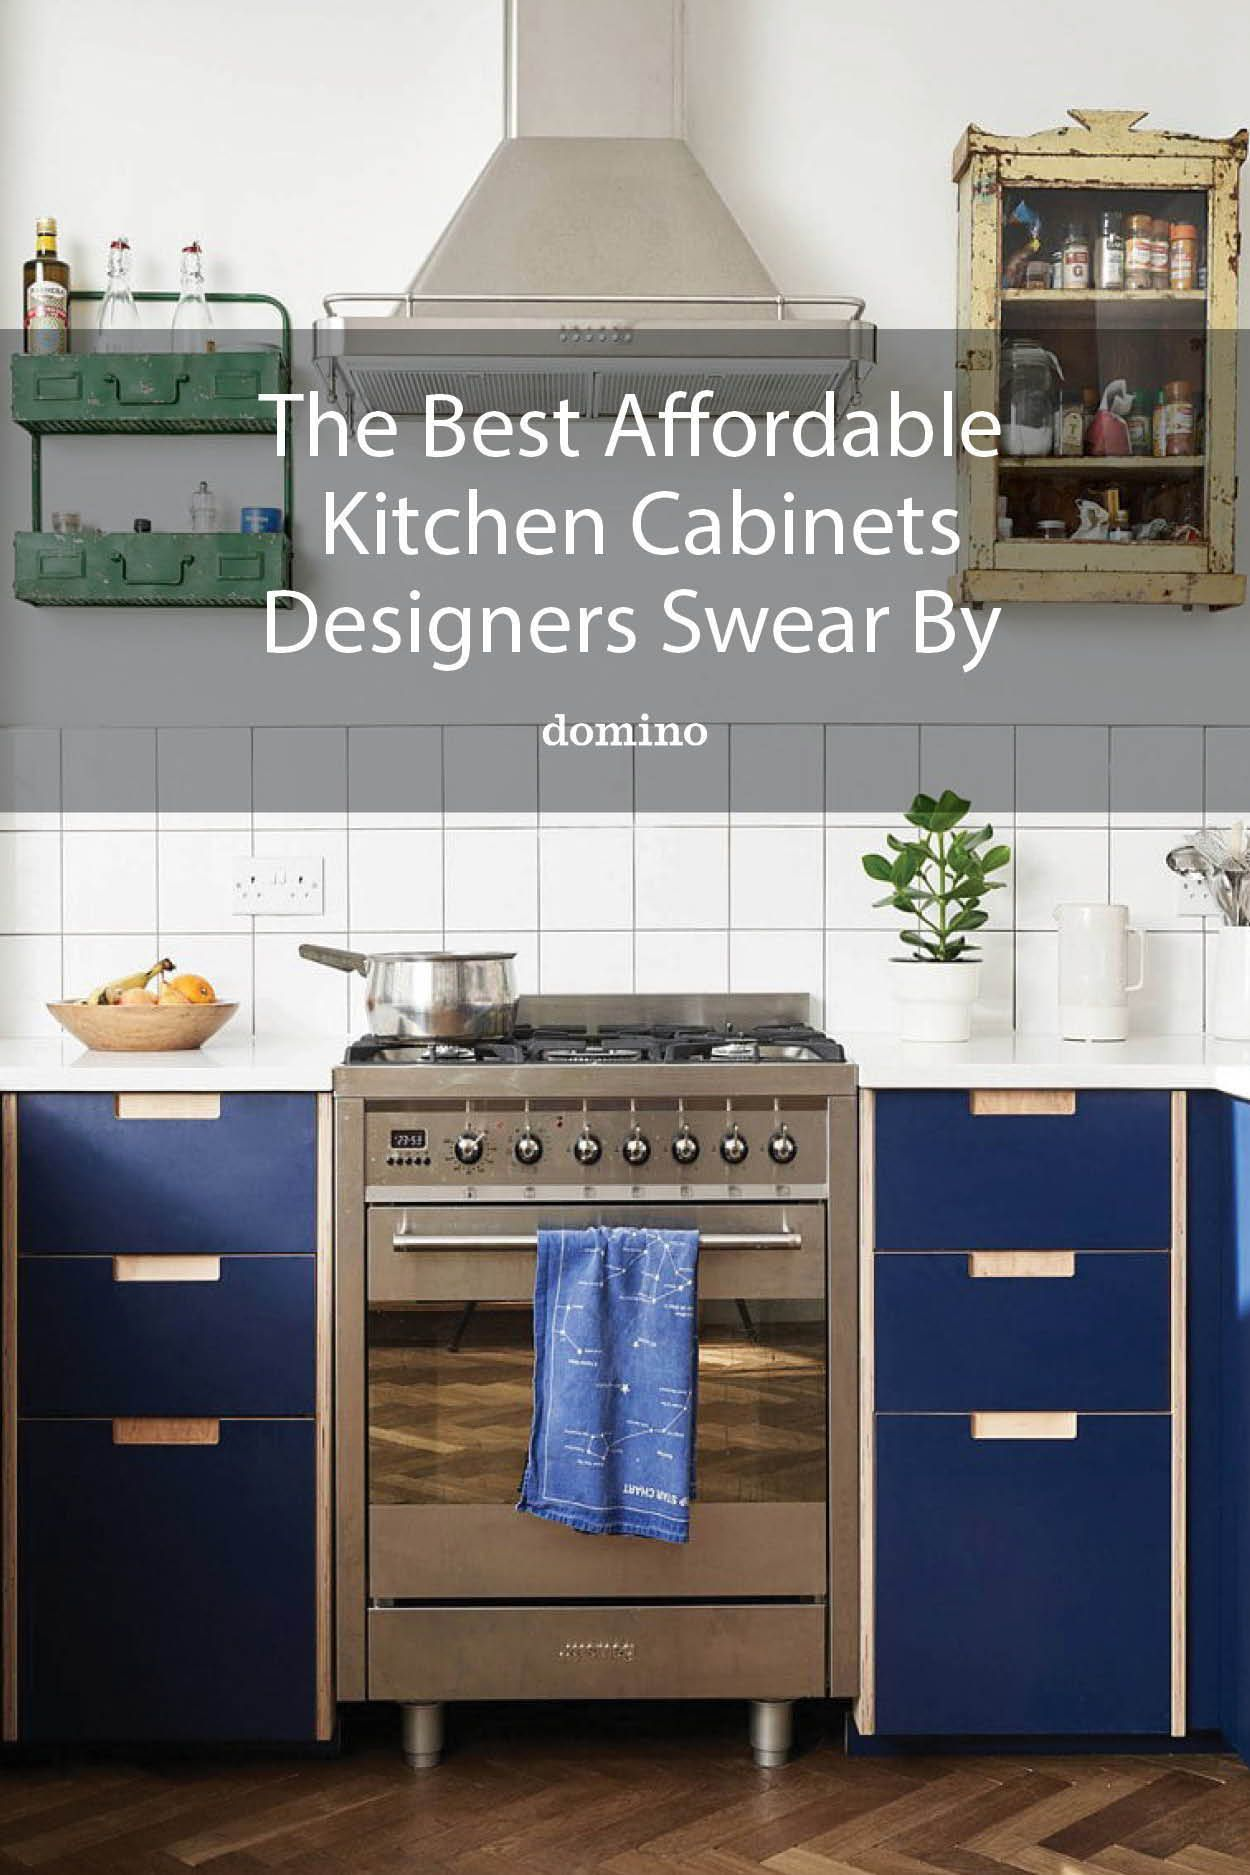 The Best Inexpensive Kitchen Cabinets Designers Swear By In 2020 Inexpensive Kitchen Cabinets Kitchen Cabinets Affordable Kitchen Cabinets